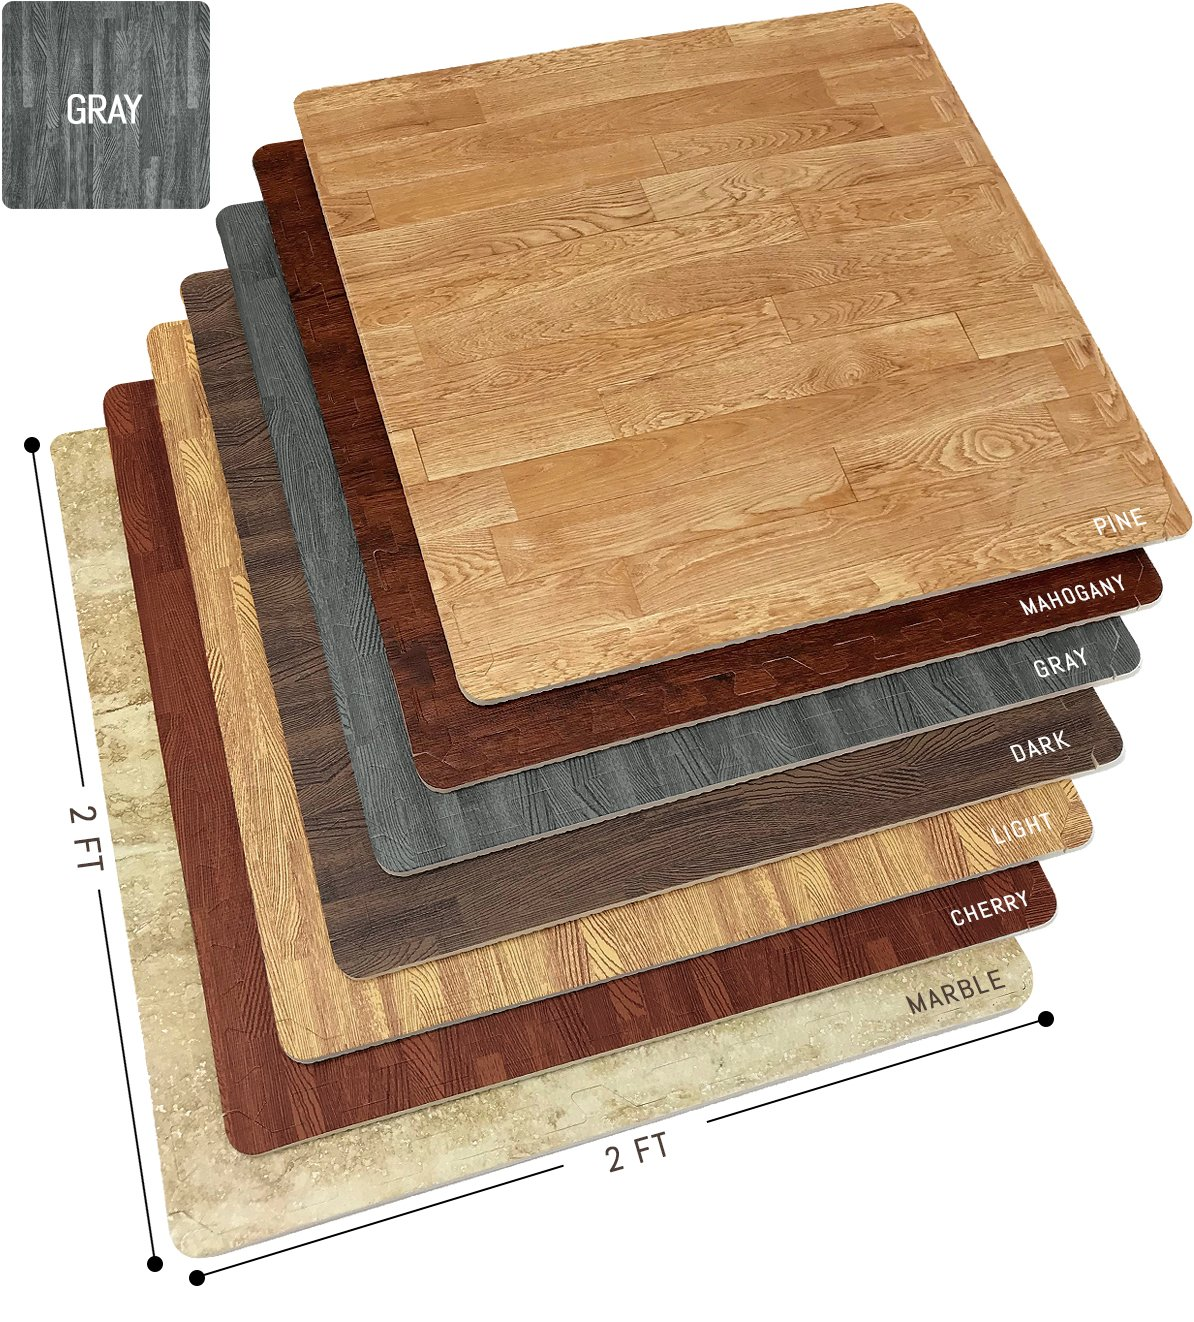 Sorbus Wood Floor Mats Foam Interlocking Wood Mats Each Tile 4 Square Feet 3/8-Inch Thick Puzzle Wood Tiles with Borders – for Home Office Playroom Basement (6 Tiles 24 Sq ft, Wood Grain - Gray) by Sorbus (Image #1)